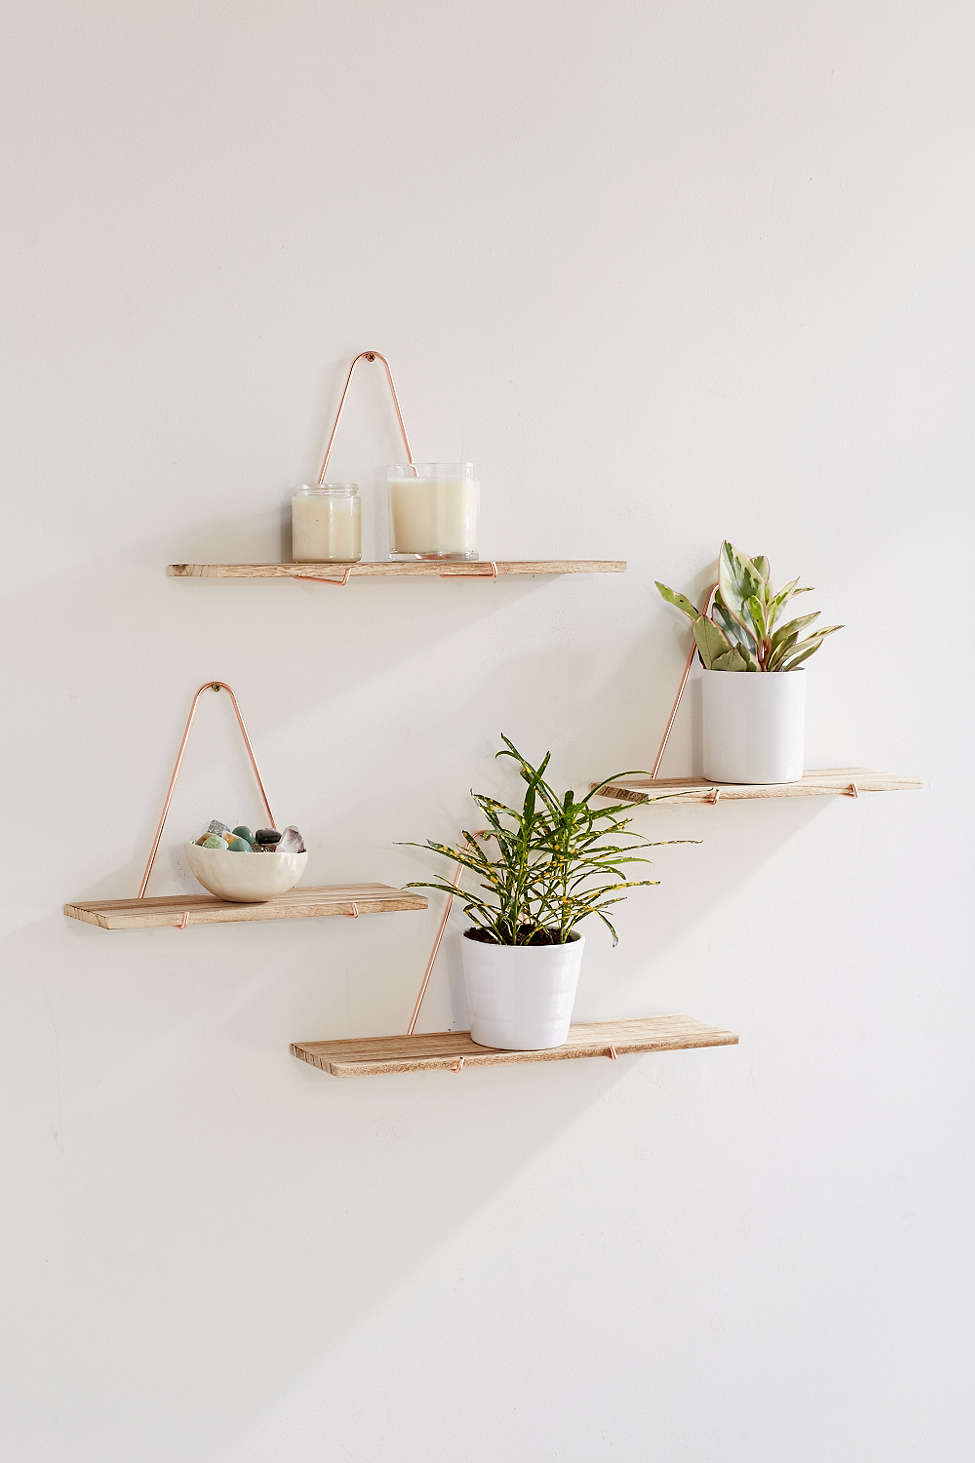 Metal and wood wall shelves from Urban Outfitters